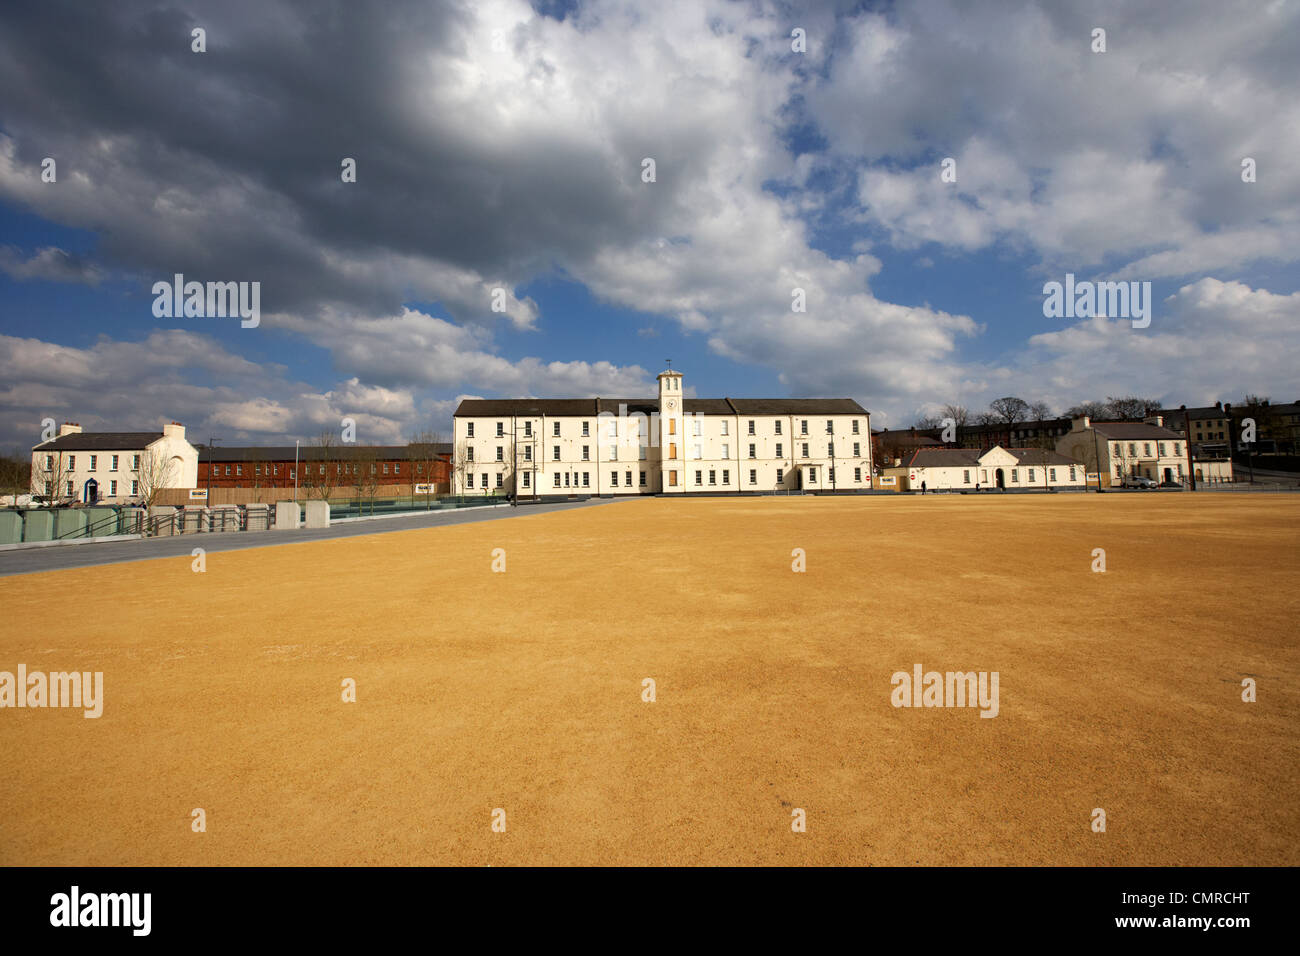 soldiers quarters with clock tower and parade ground in ebrington square former ebrington barracks british military - Stock Image